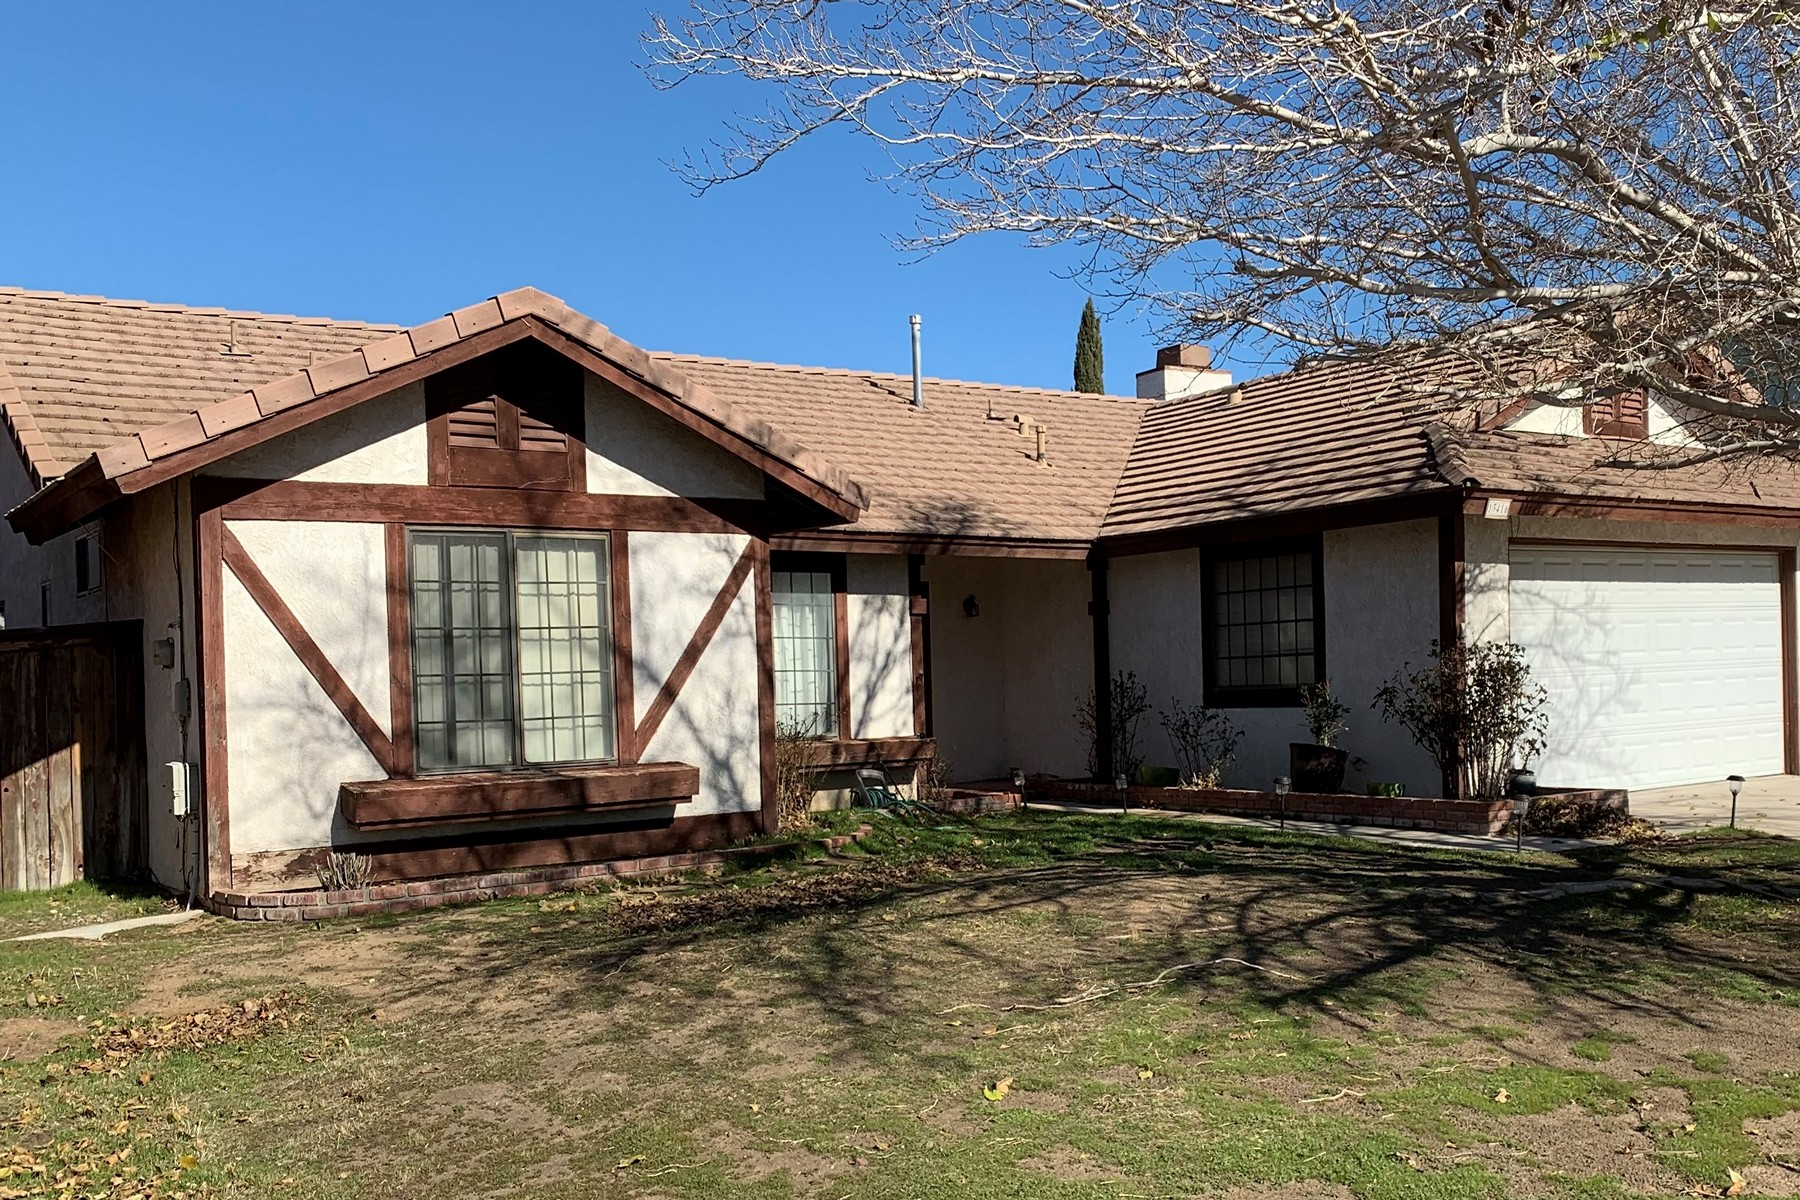 Single Family Homes for Active at 13416 Northstar Avenue, Victorville, CA 92392 13416 Northstar Avenue Victorville, California 92392 United States